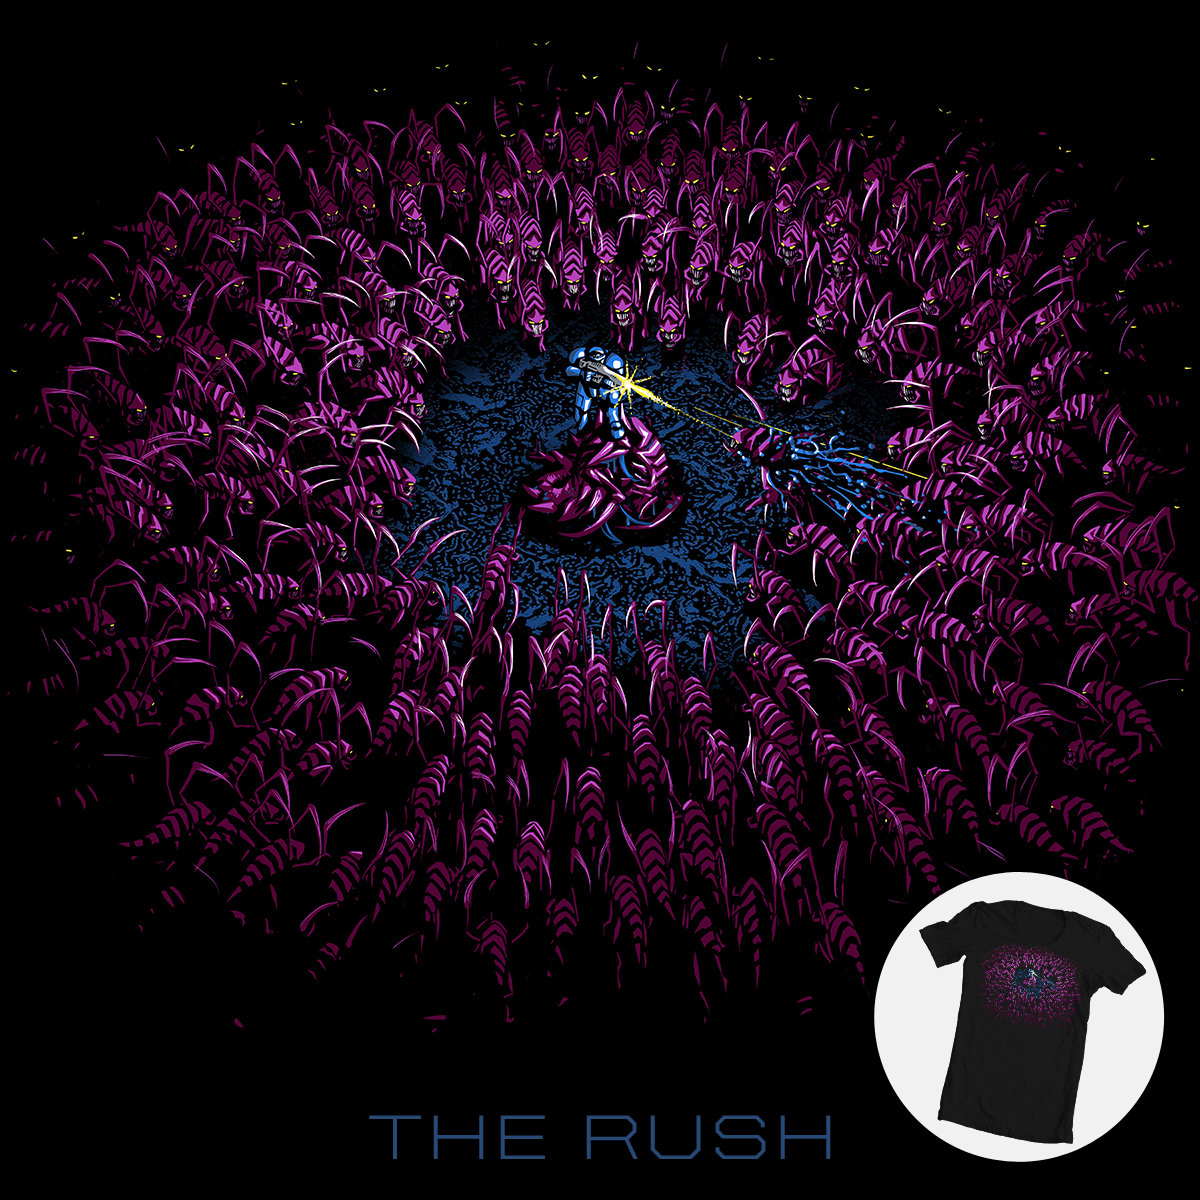 The Rush by aled on Threadless